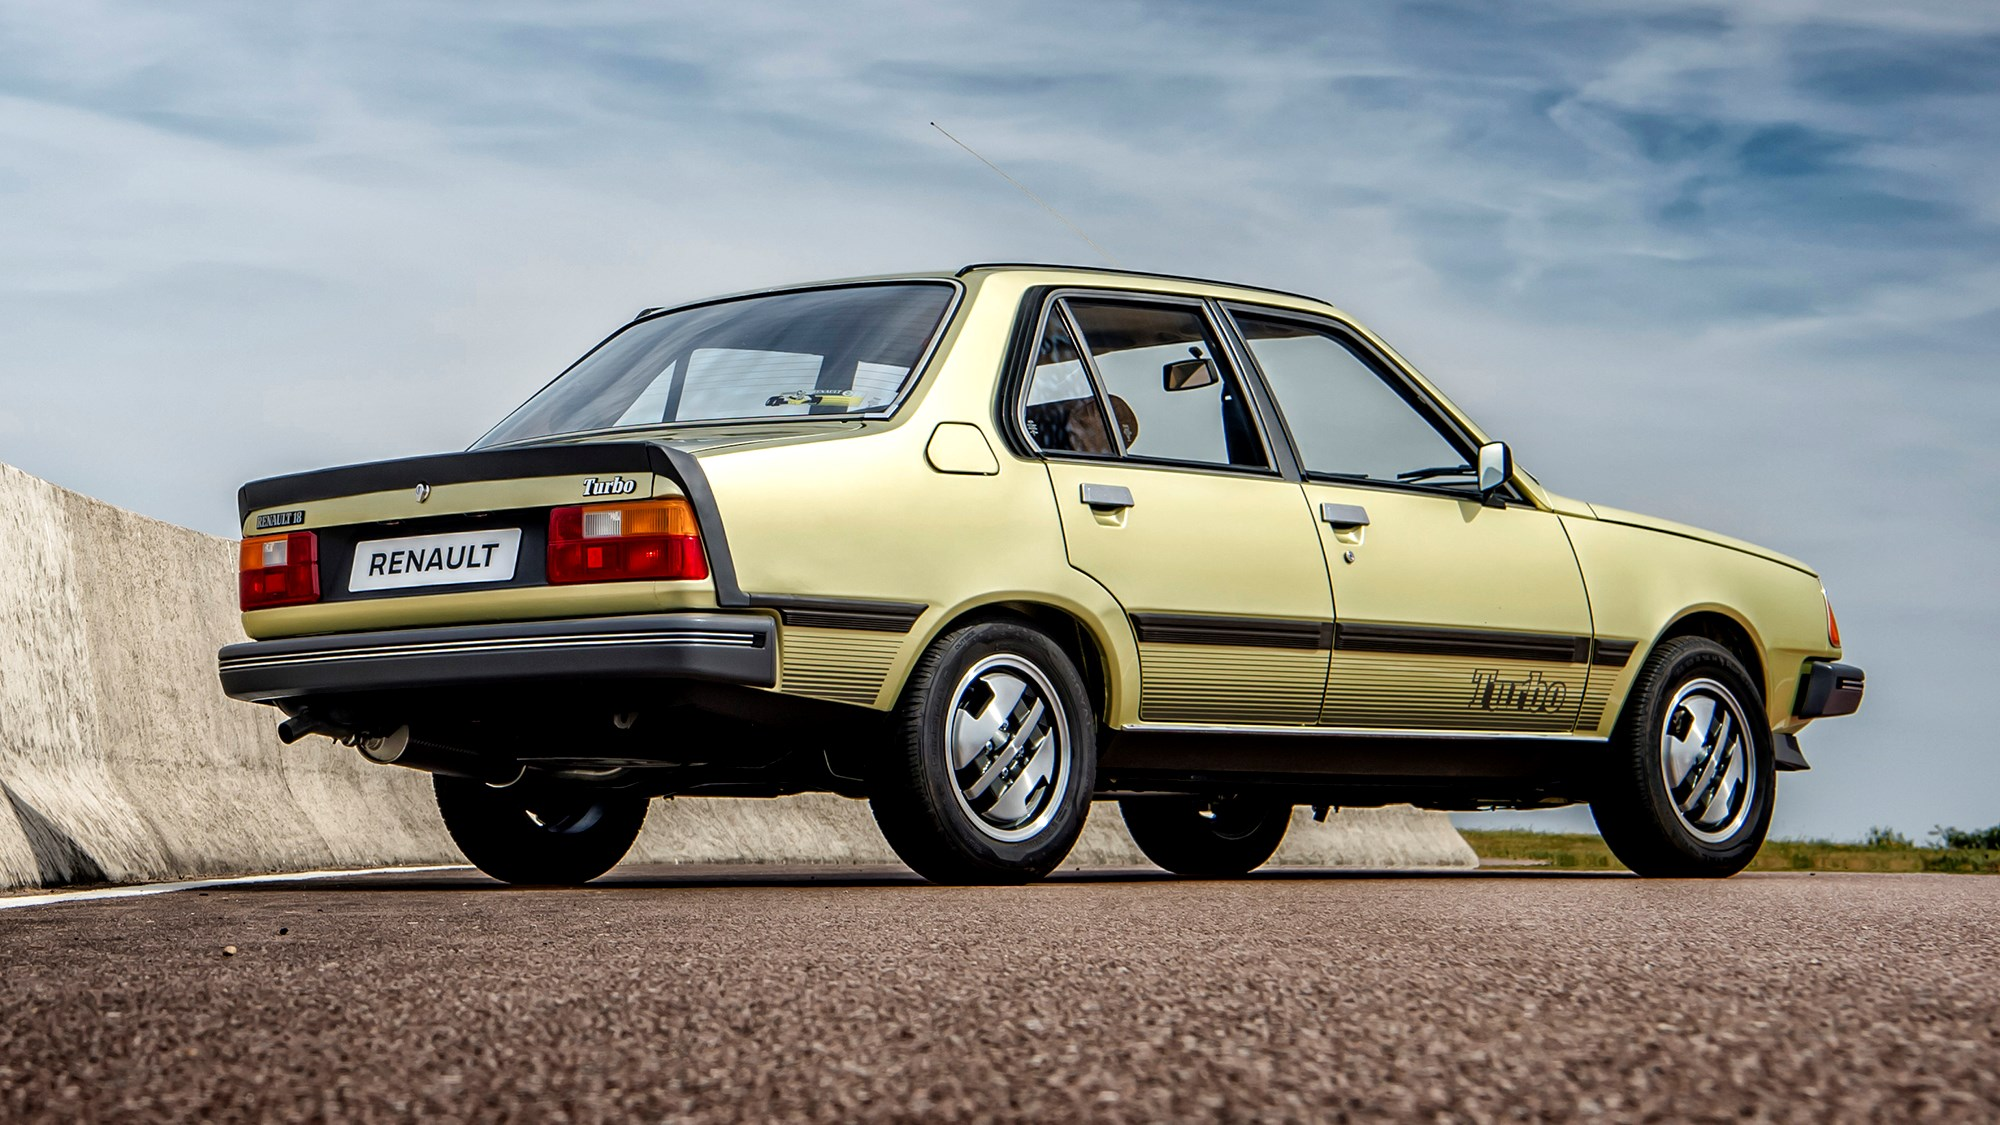 Driving the classics: Renault 18 Turbo review | CAR Magazine